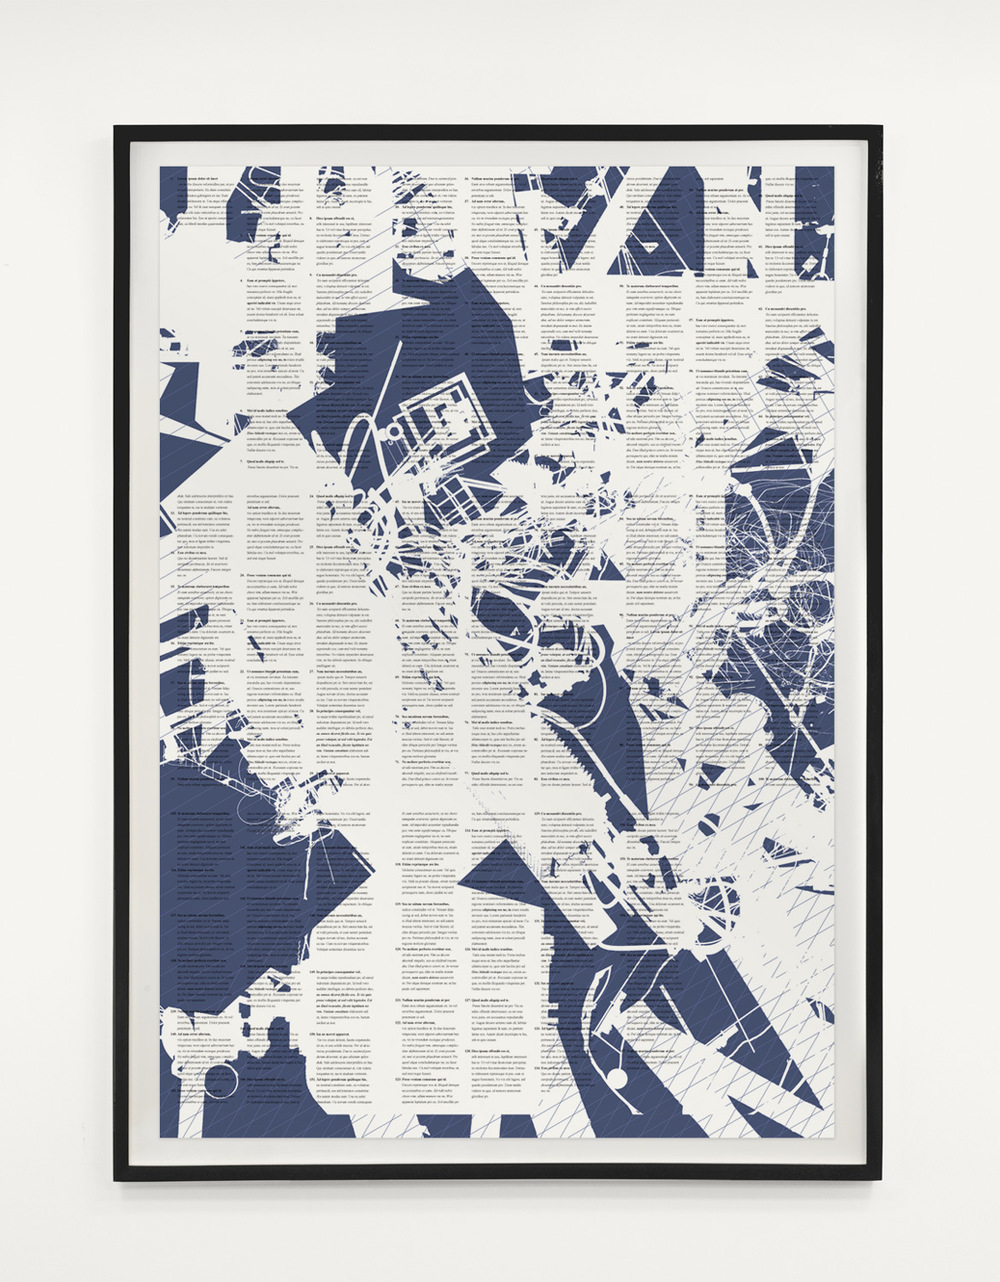 Tom Tebby Visual Artist - Untitled with textDigital print on archival paper. 78 x 58cm